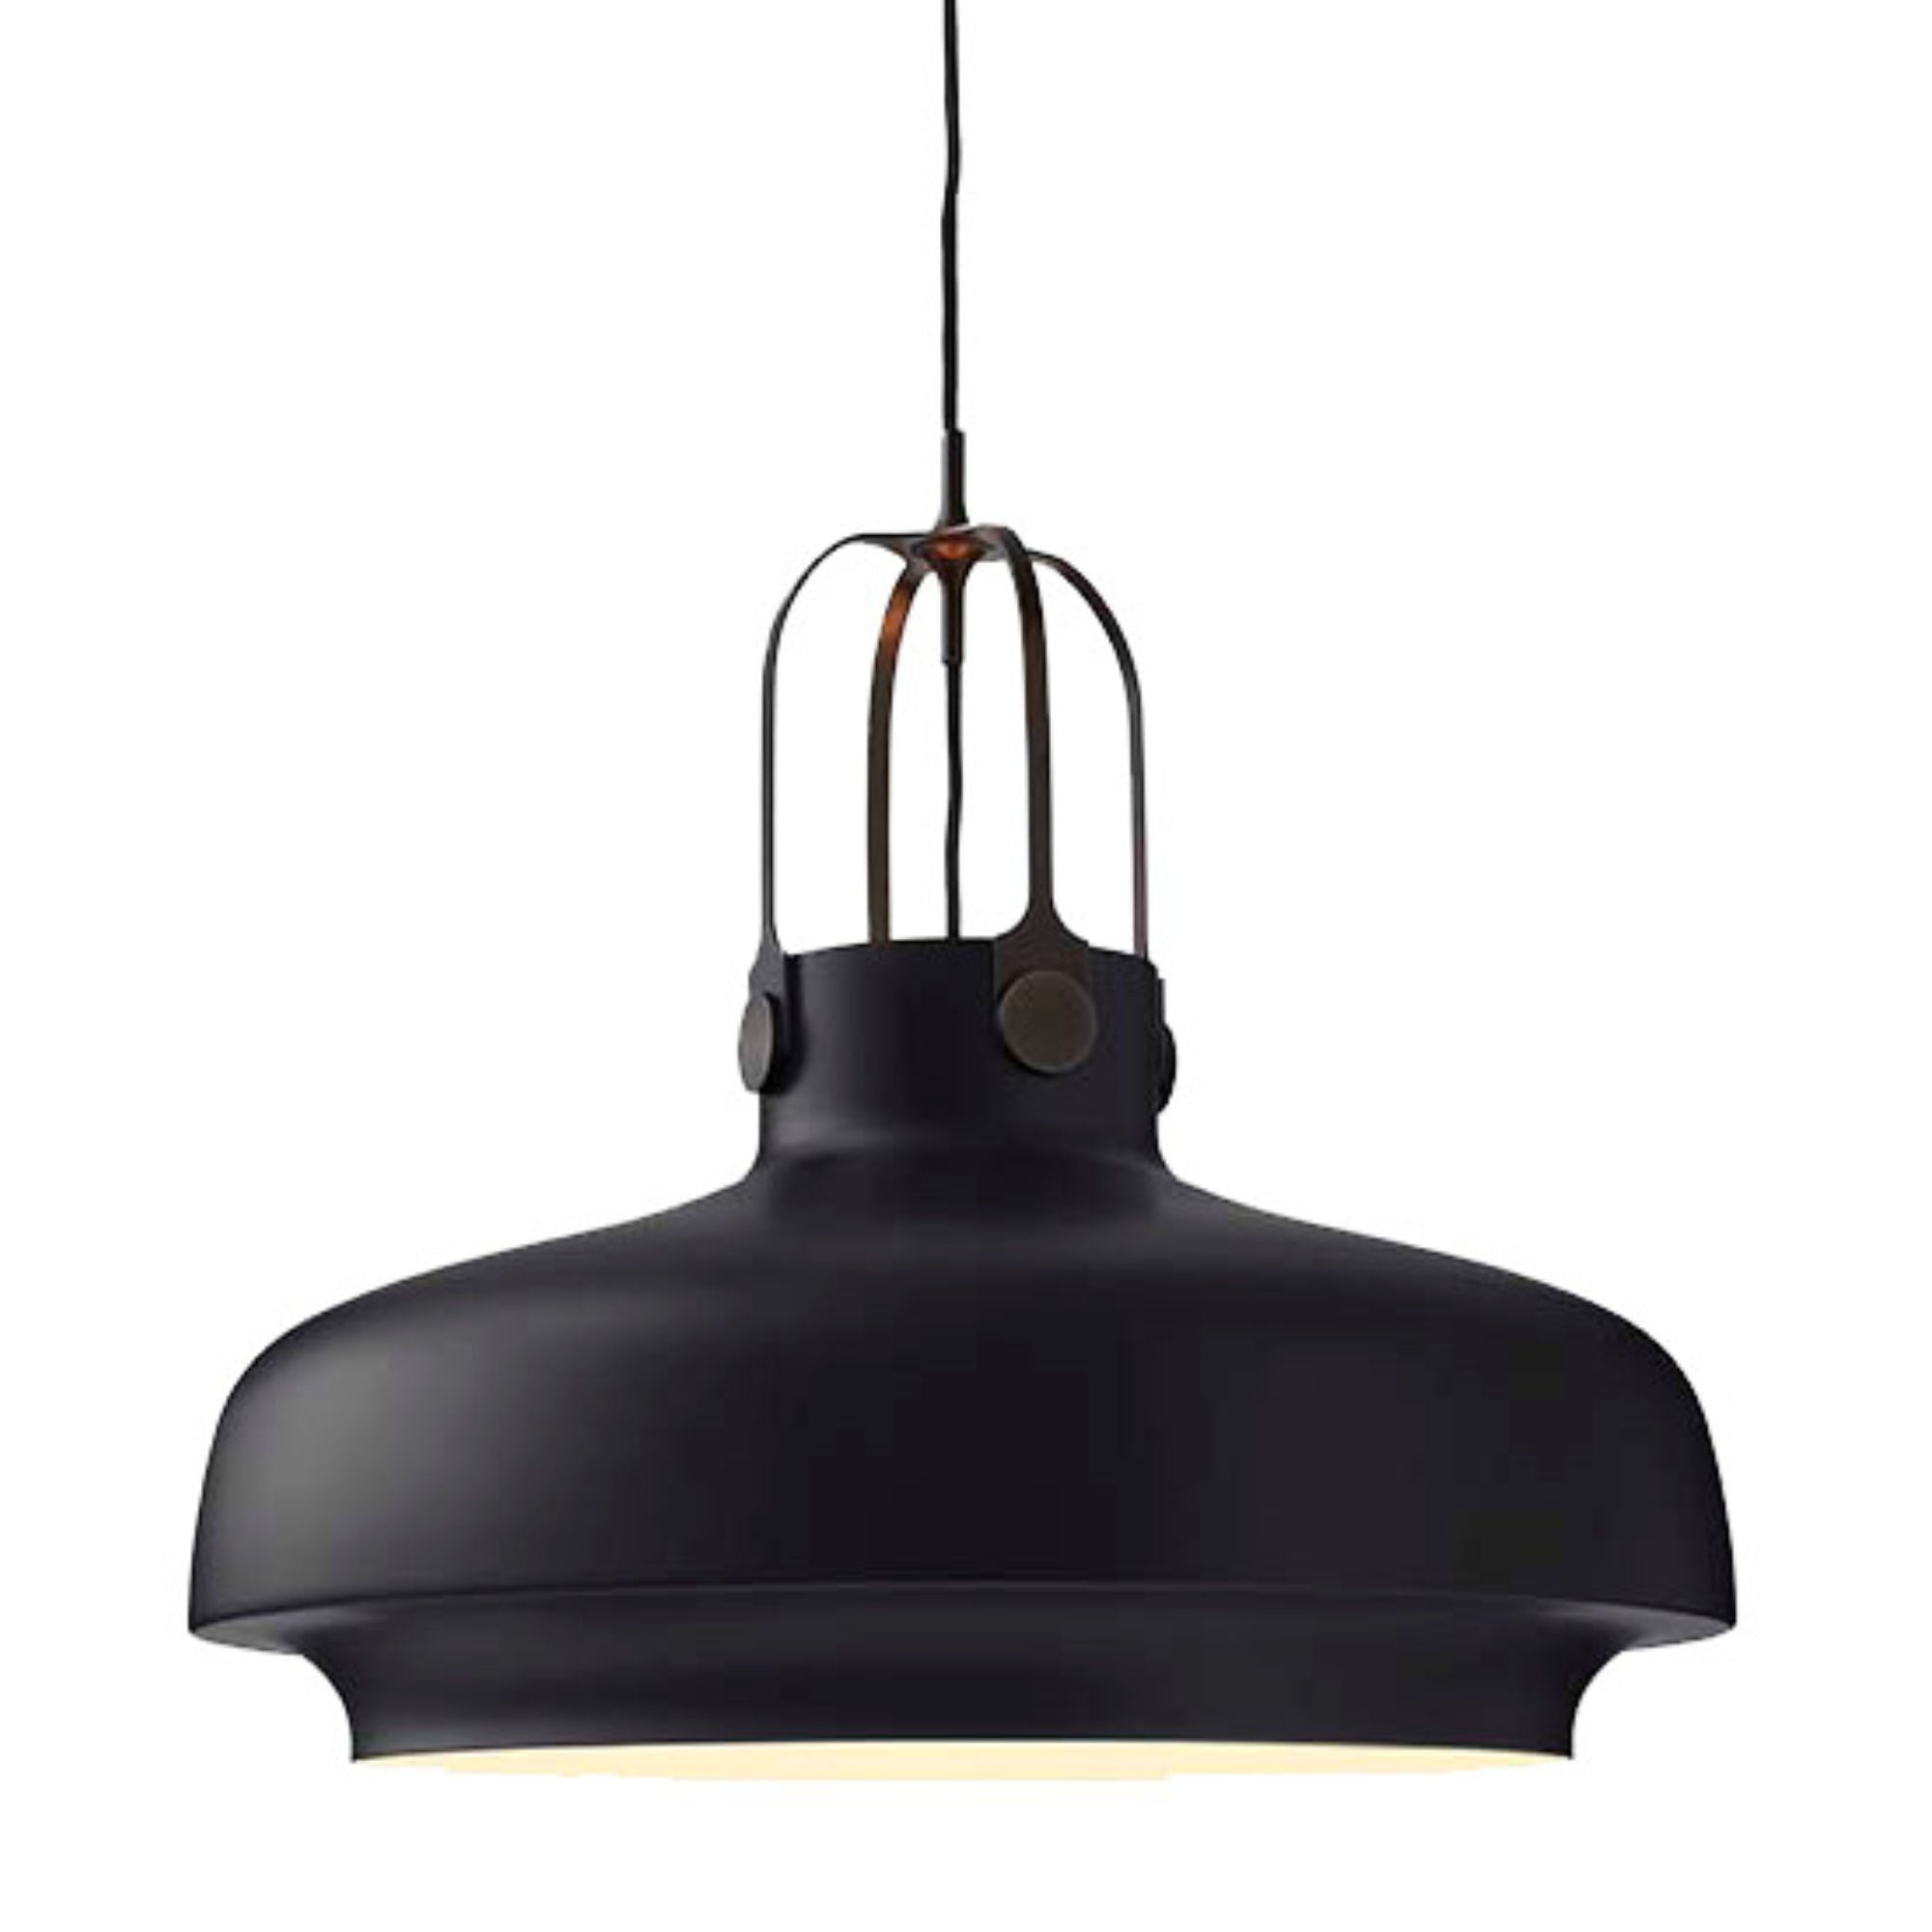 SC8 Copenhagen pendant light, matt black - bronzed brass suspension